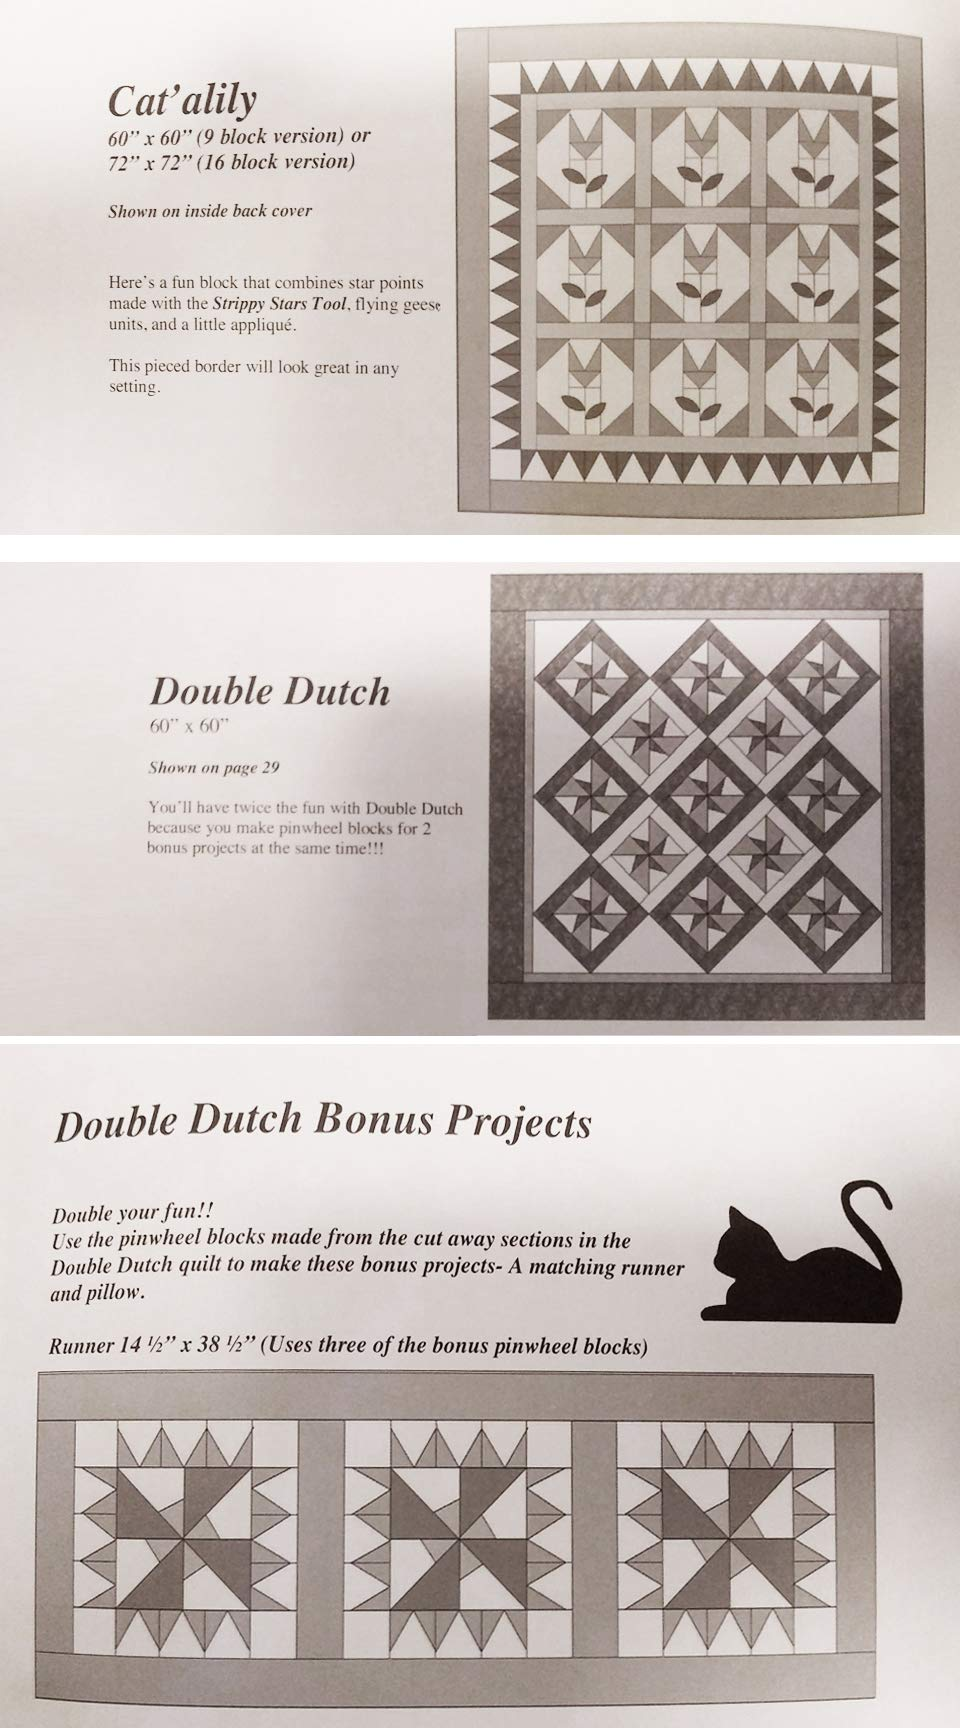 Deb's Cats N Quilts Bundle - The Strippy Stars Book & Creative Grids Strippy Stars Tool CGRDH2 by Deb's Cats N Quilts / Creative Grids